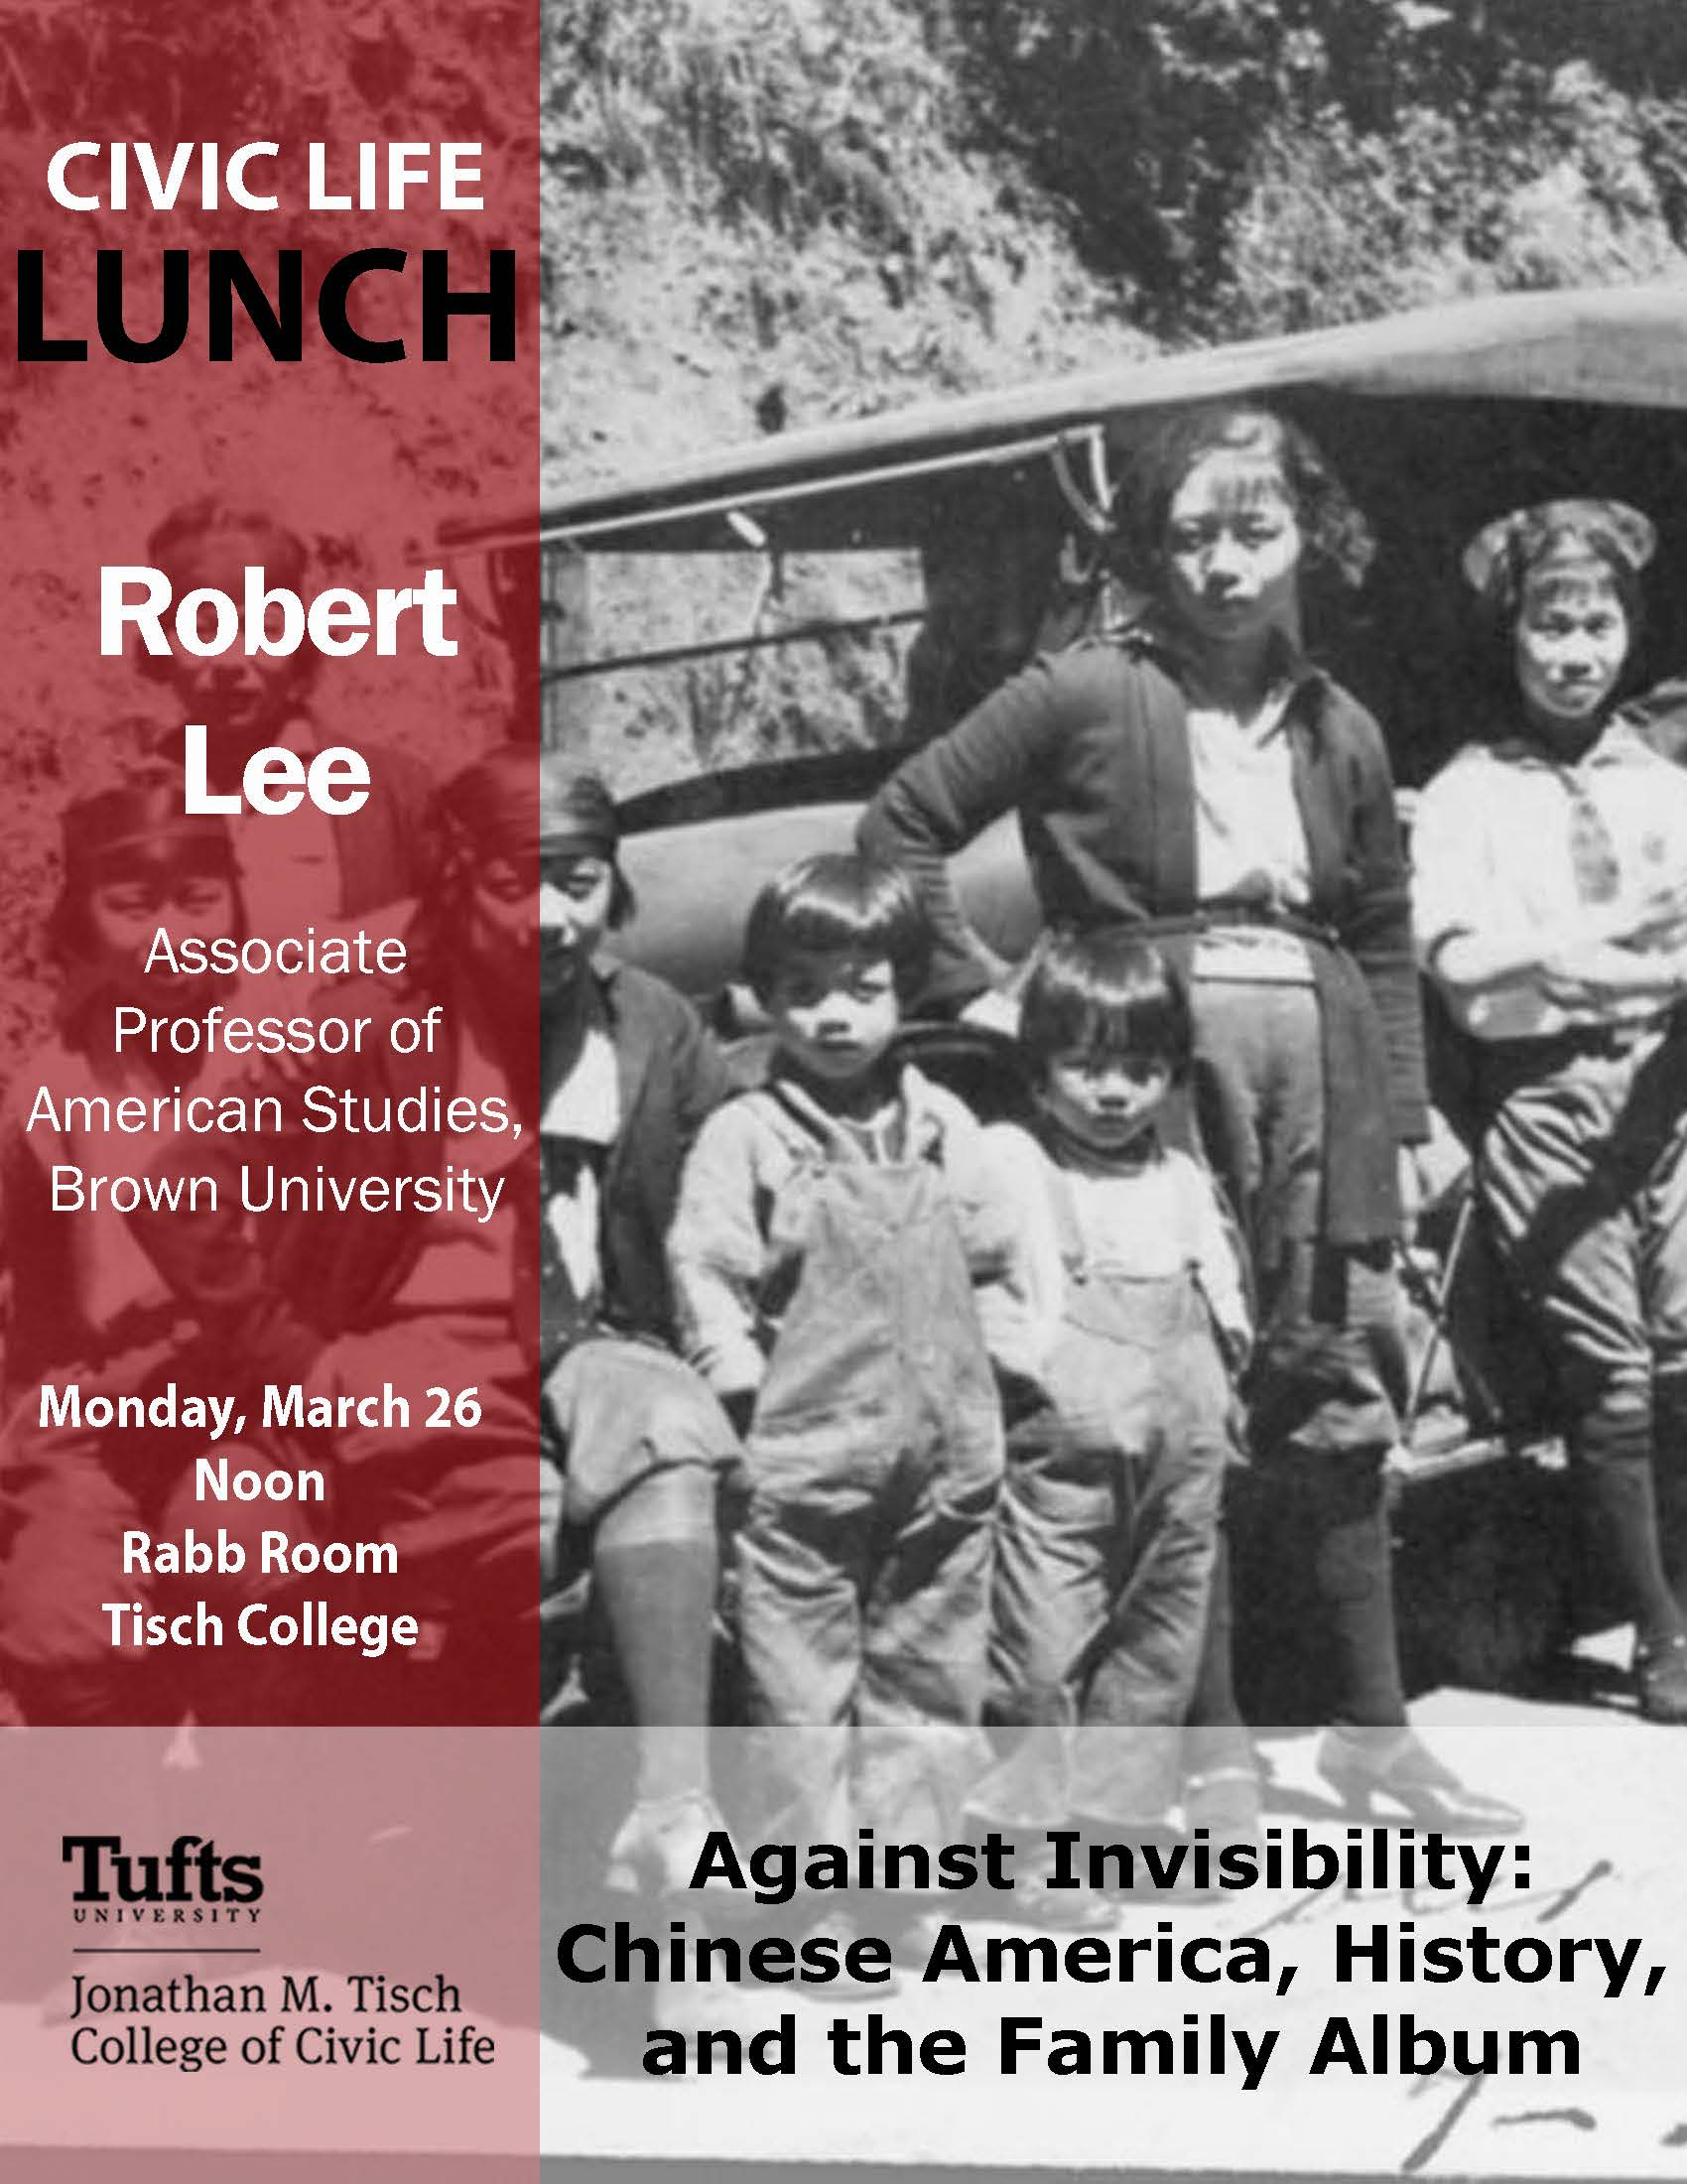 Robert Lee Civic Life Lunch